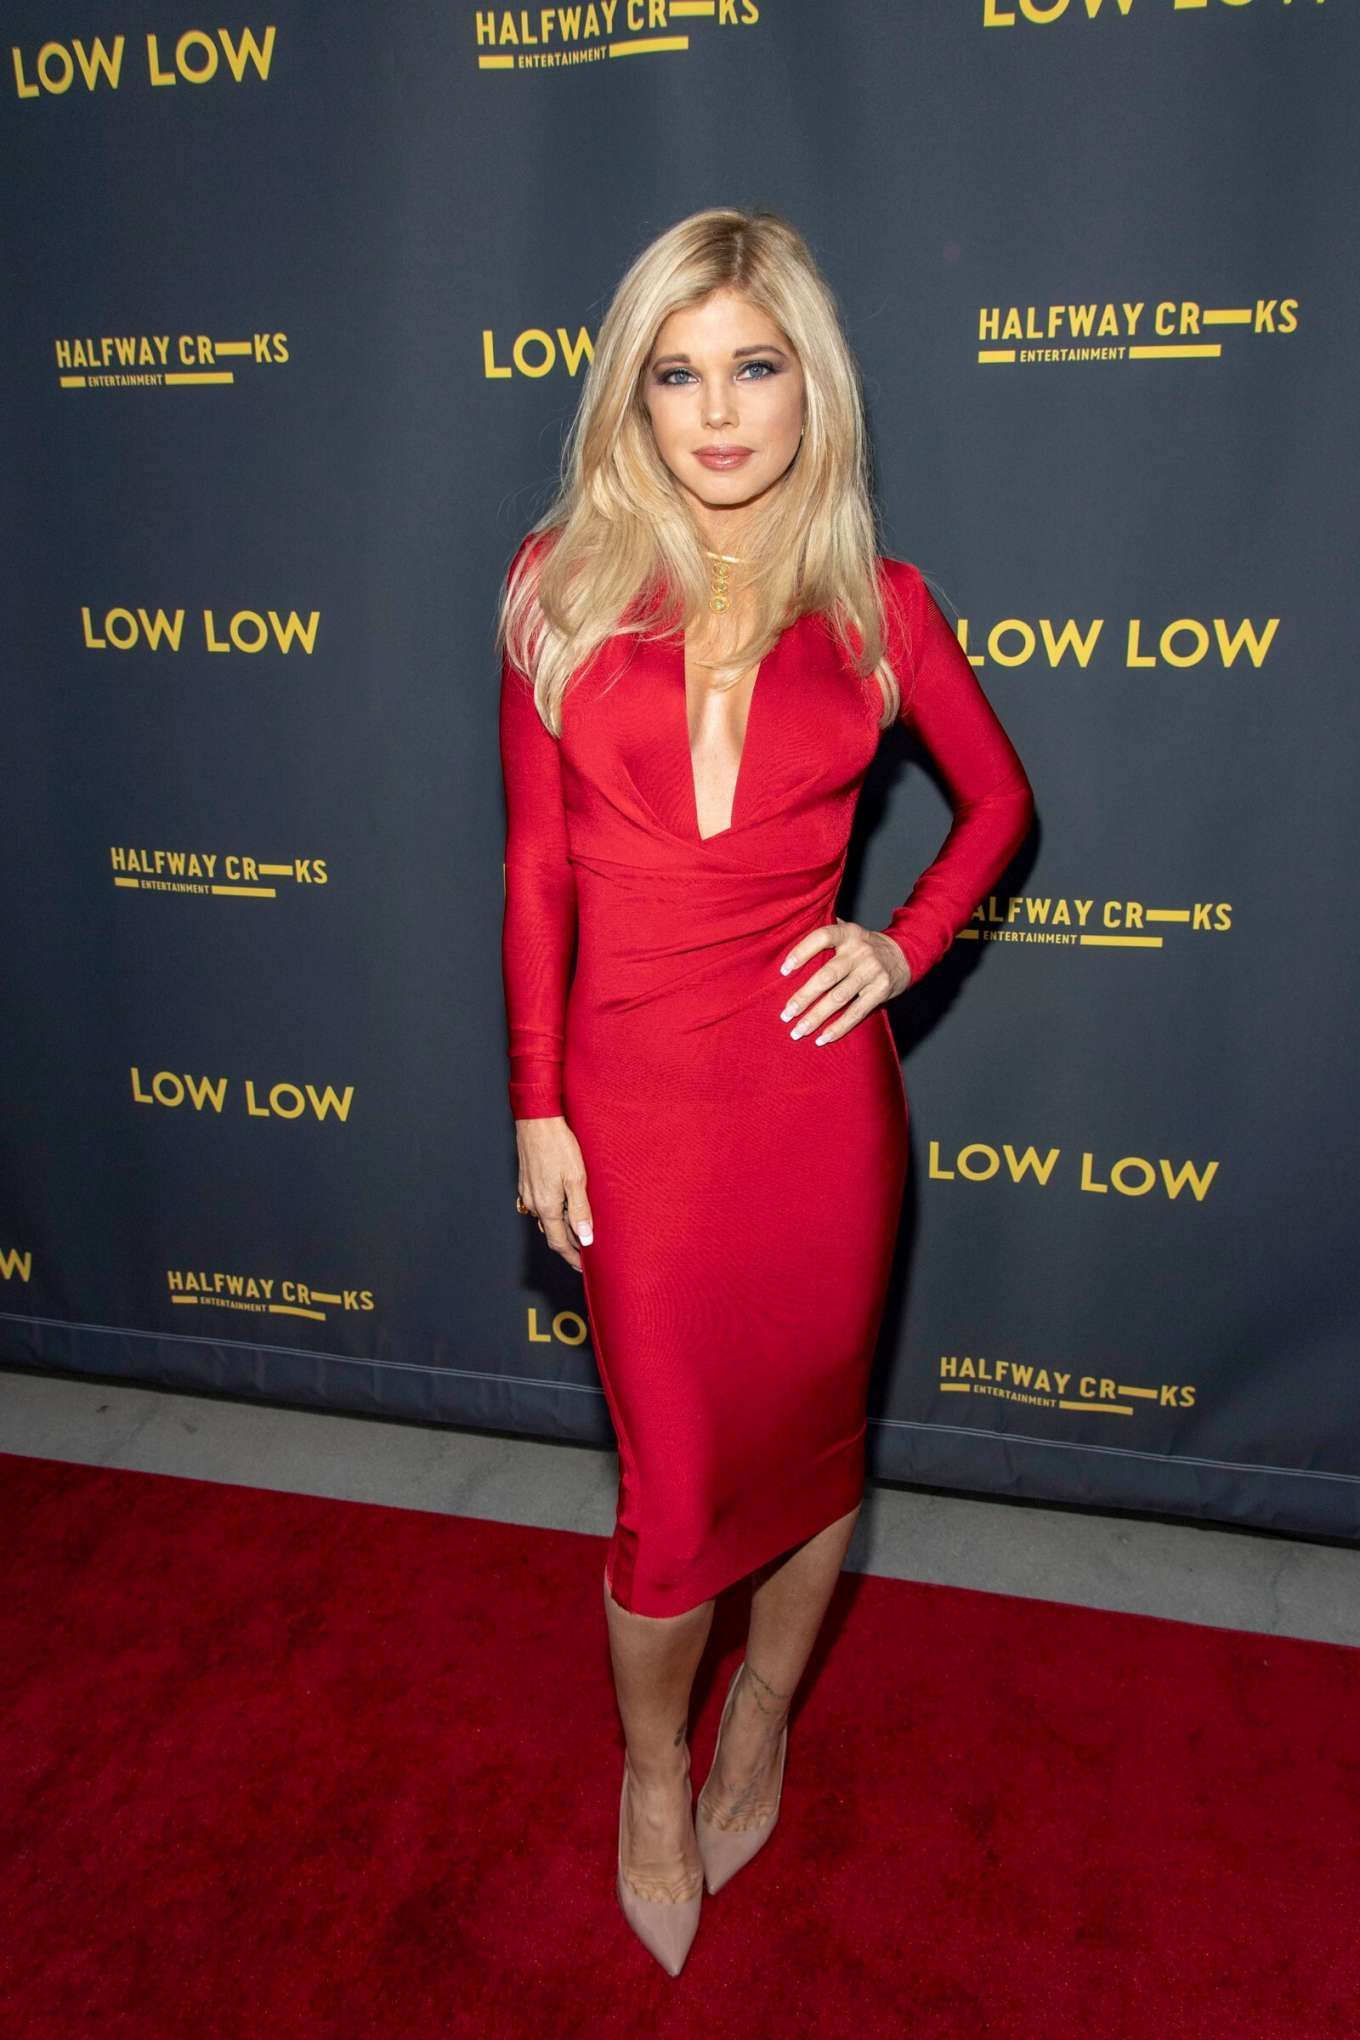 Donna D'Errico 2019 : Donna DErrico – Low Low premiere photocall at the ArcLight Hollywood in Los Angeles -04